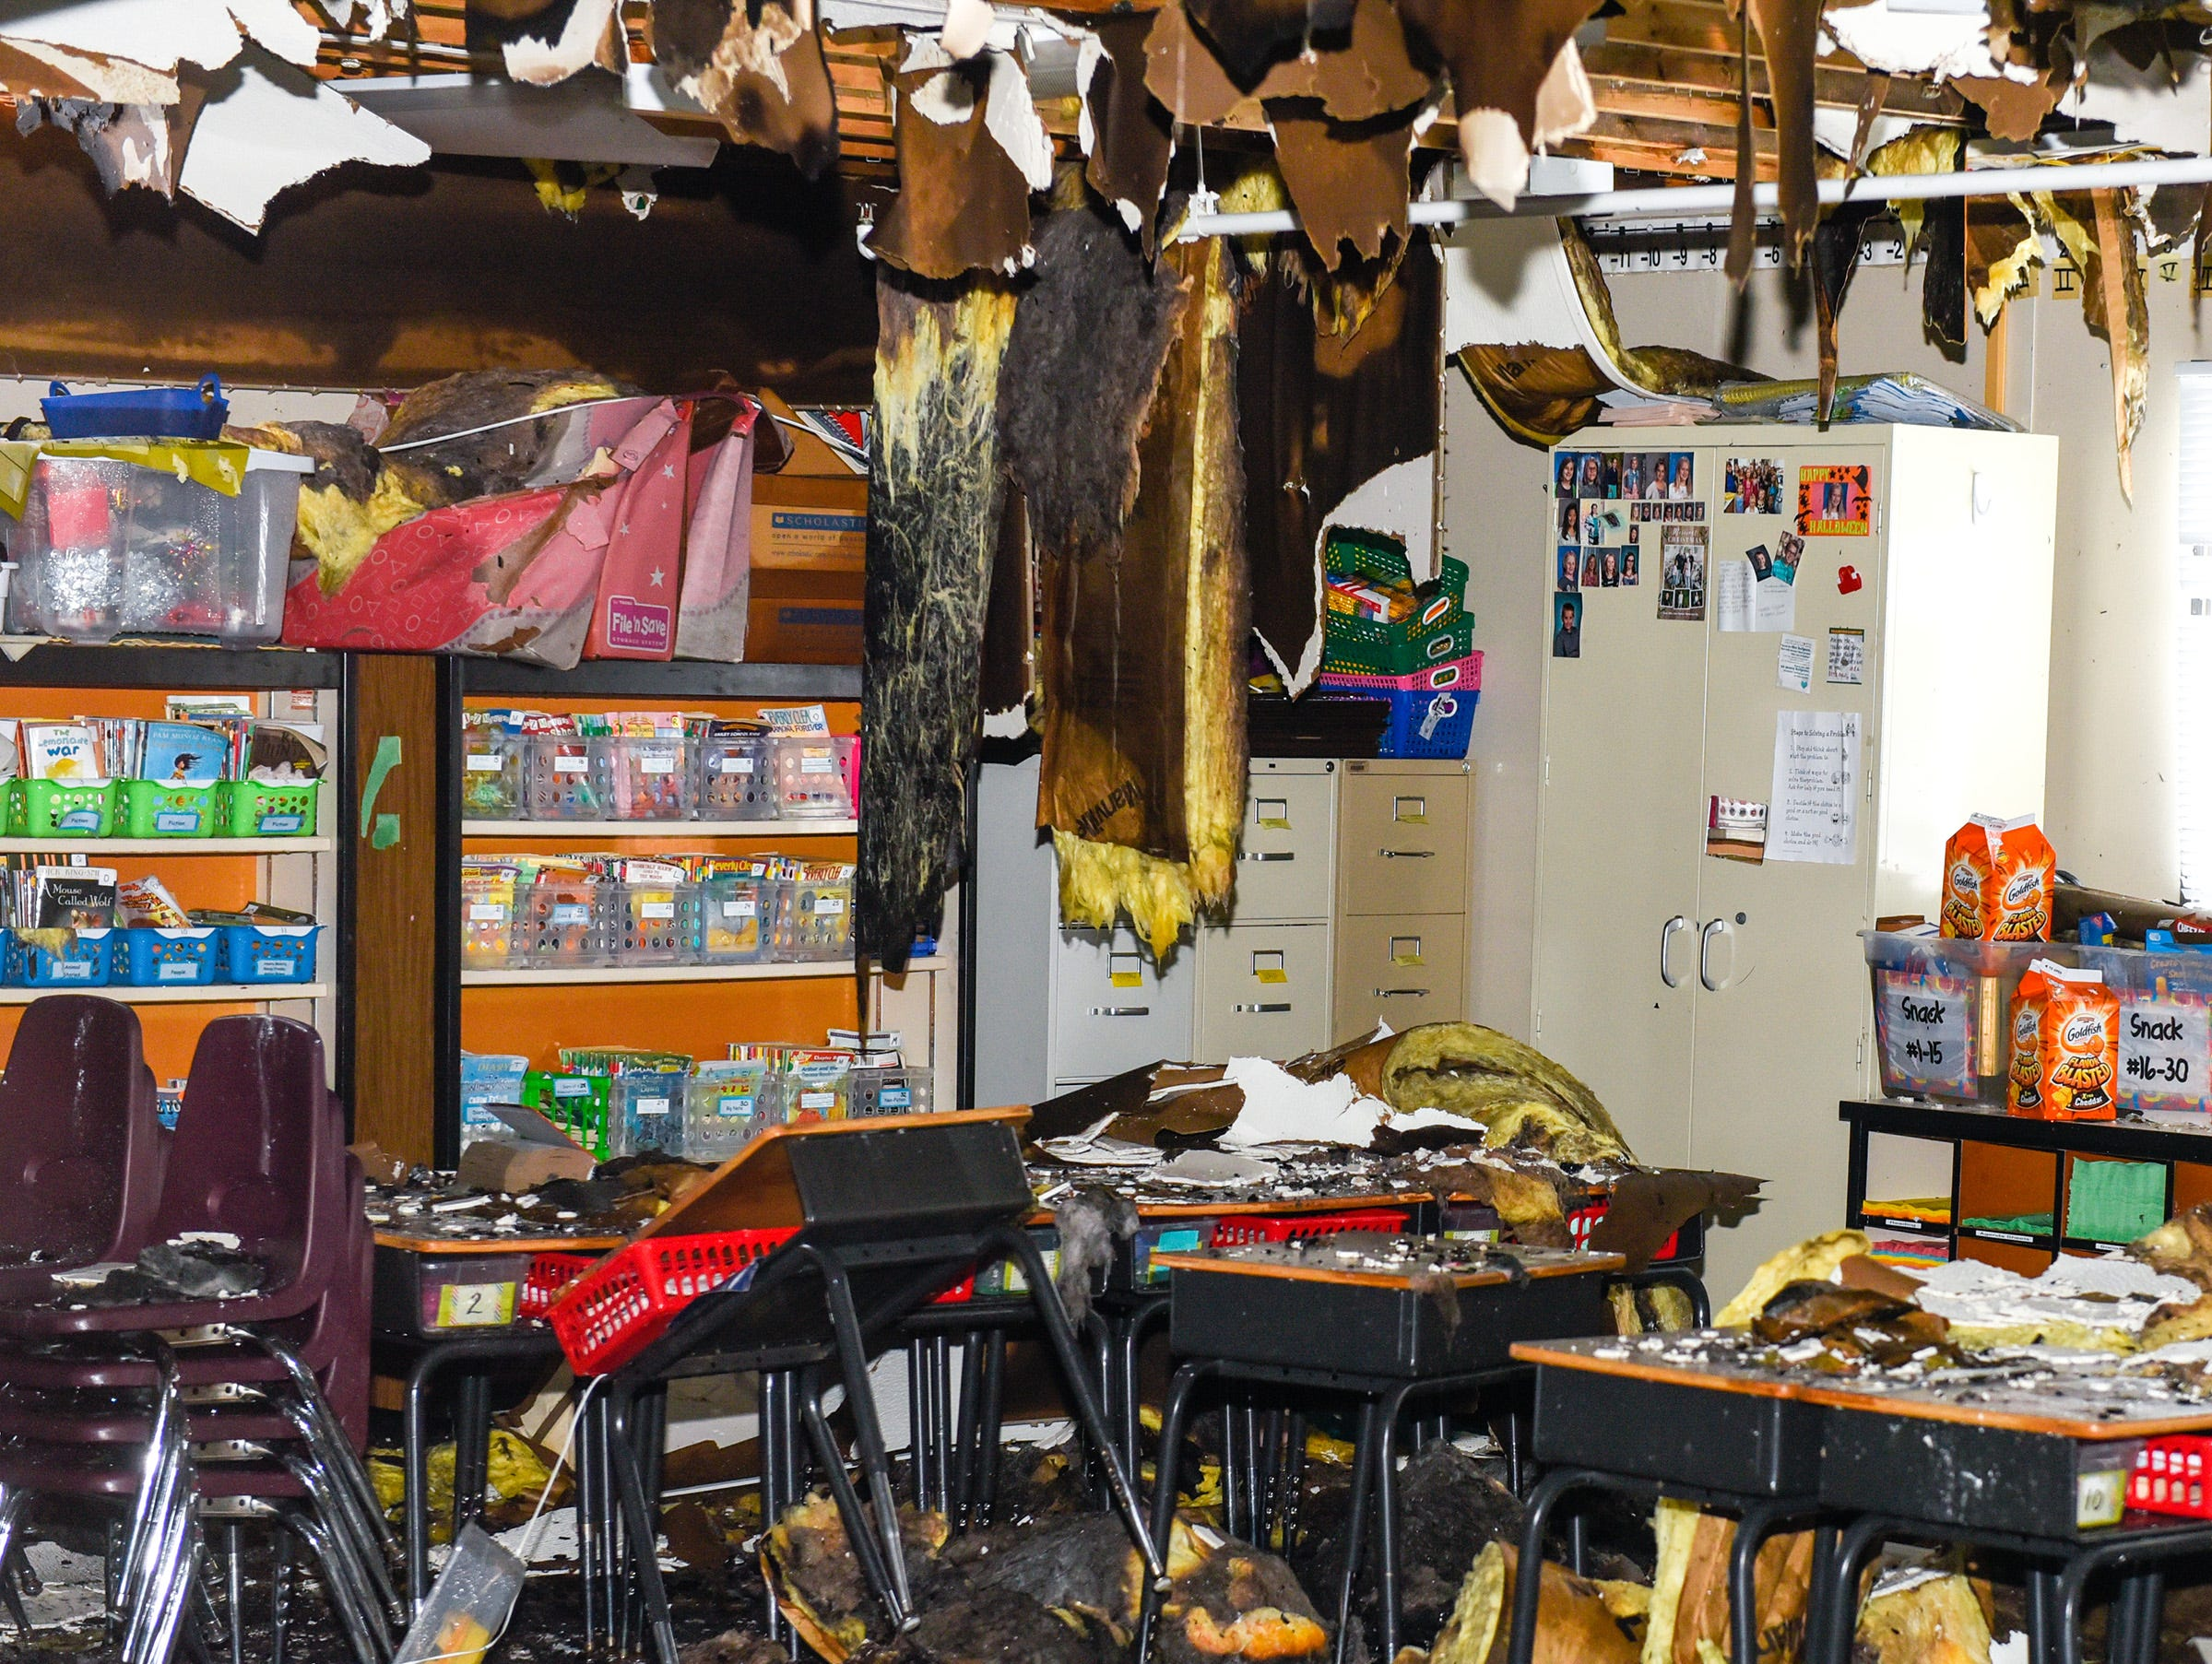 A damaged classroom at Pleasantview Elementary School shown Monday, Jan. 14, after a fire Sunday night in Sauk Rapids.